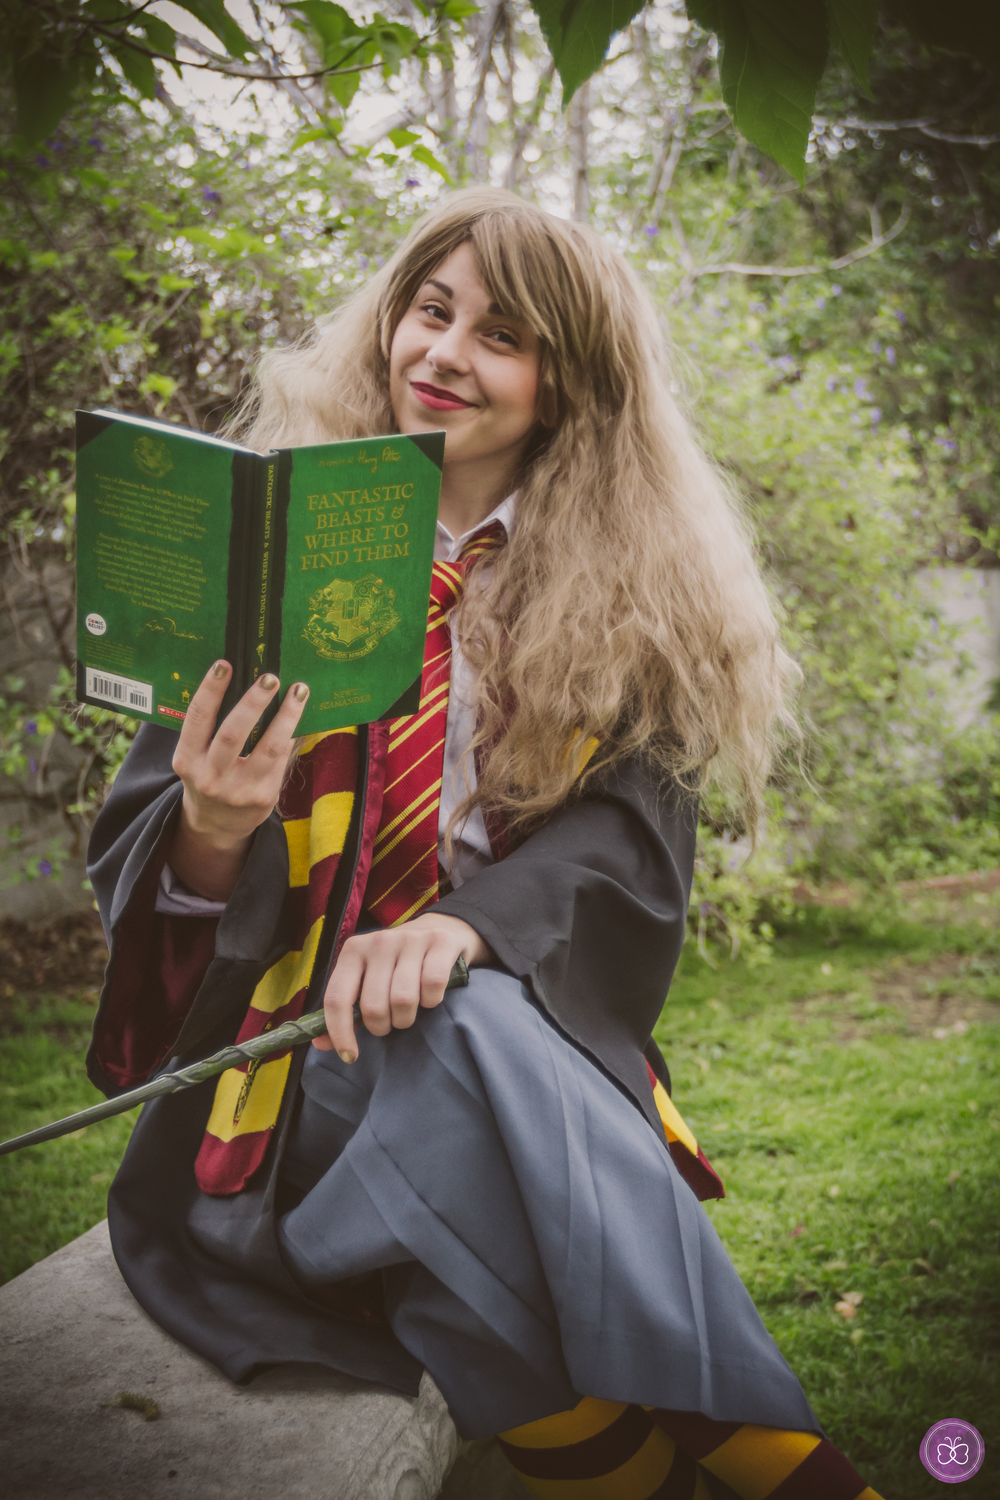 hermione harry potter hogwarts party wizard character los angeles (3 of 3).jpg